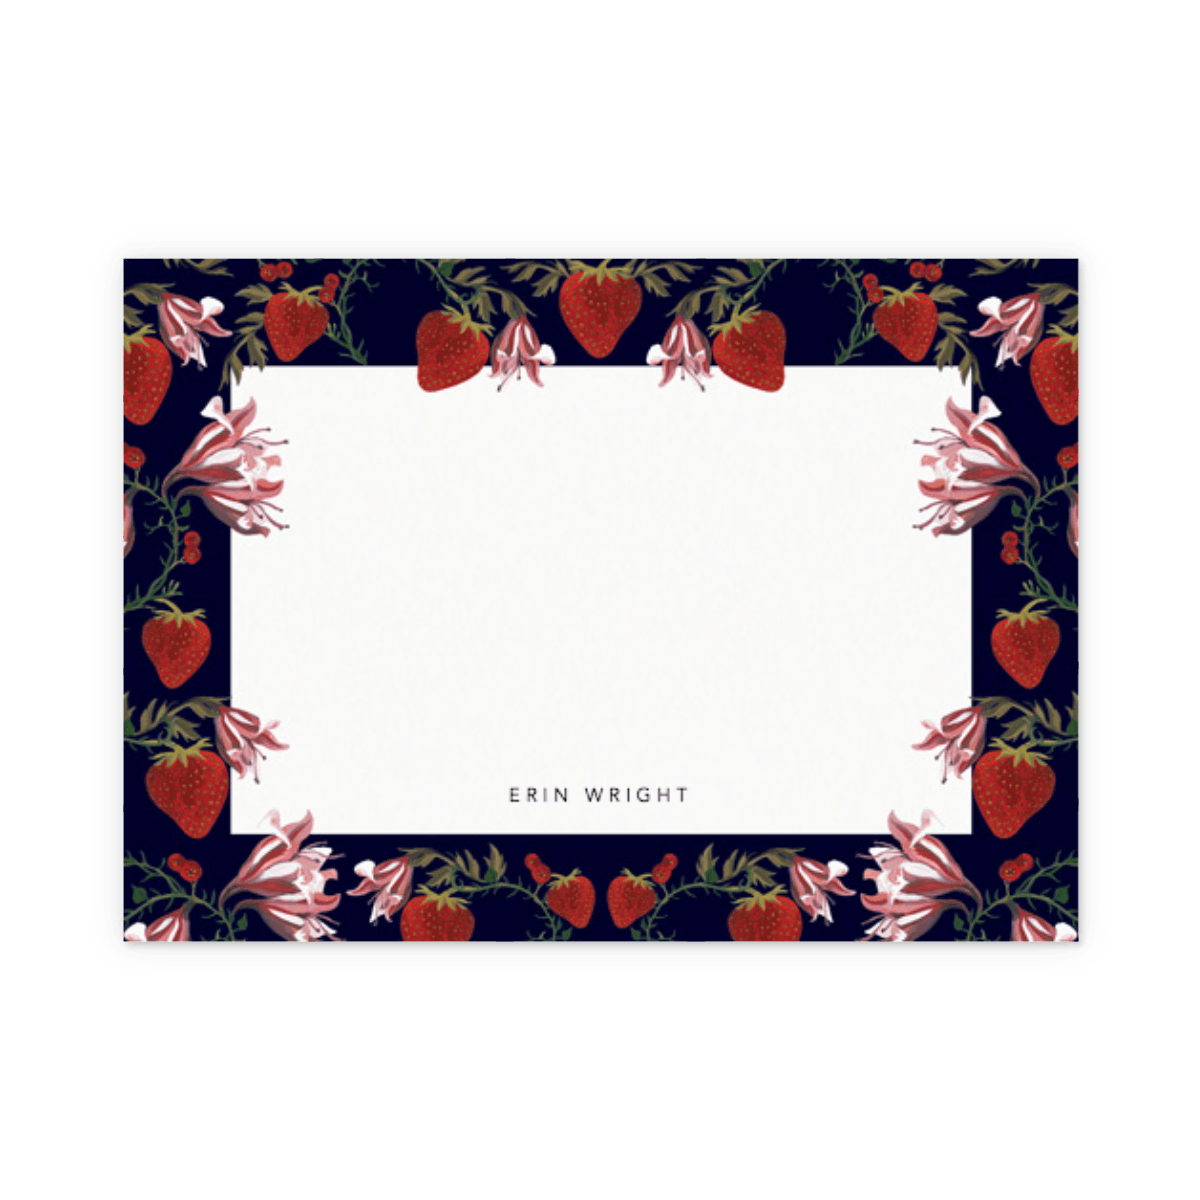 Https%3a%2f%2fwww.papier.com%2fproduct image%2f45244%2f10%2fstrawberry floral 11231 front 1559069626.png?ixlib=rb 1.1